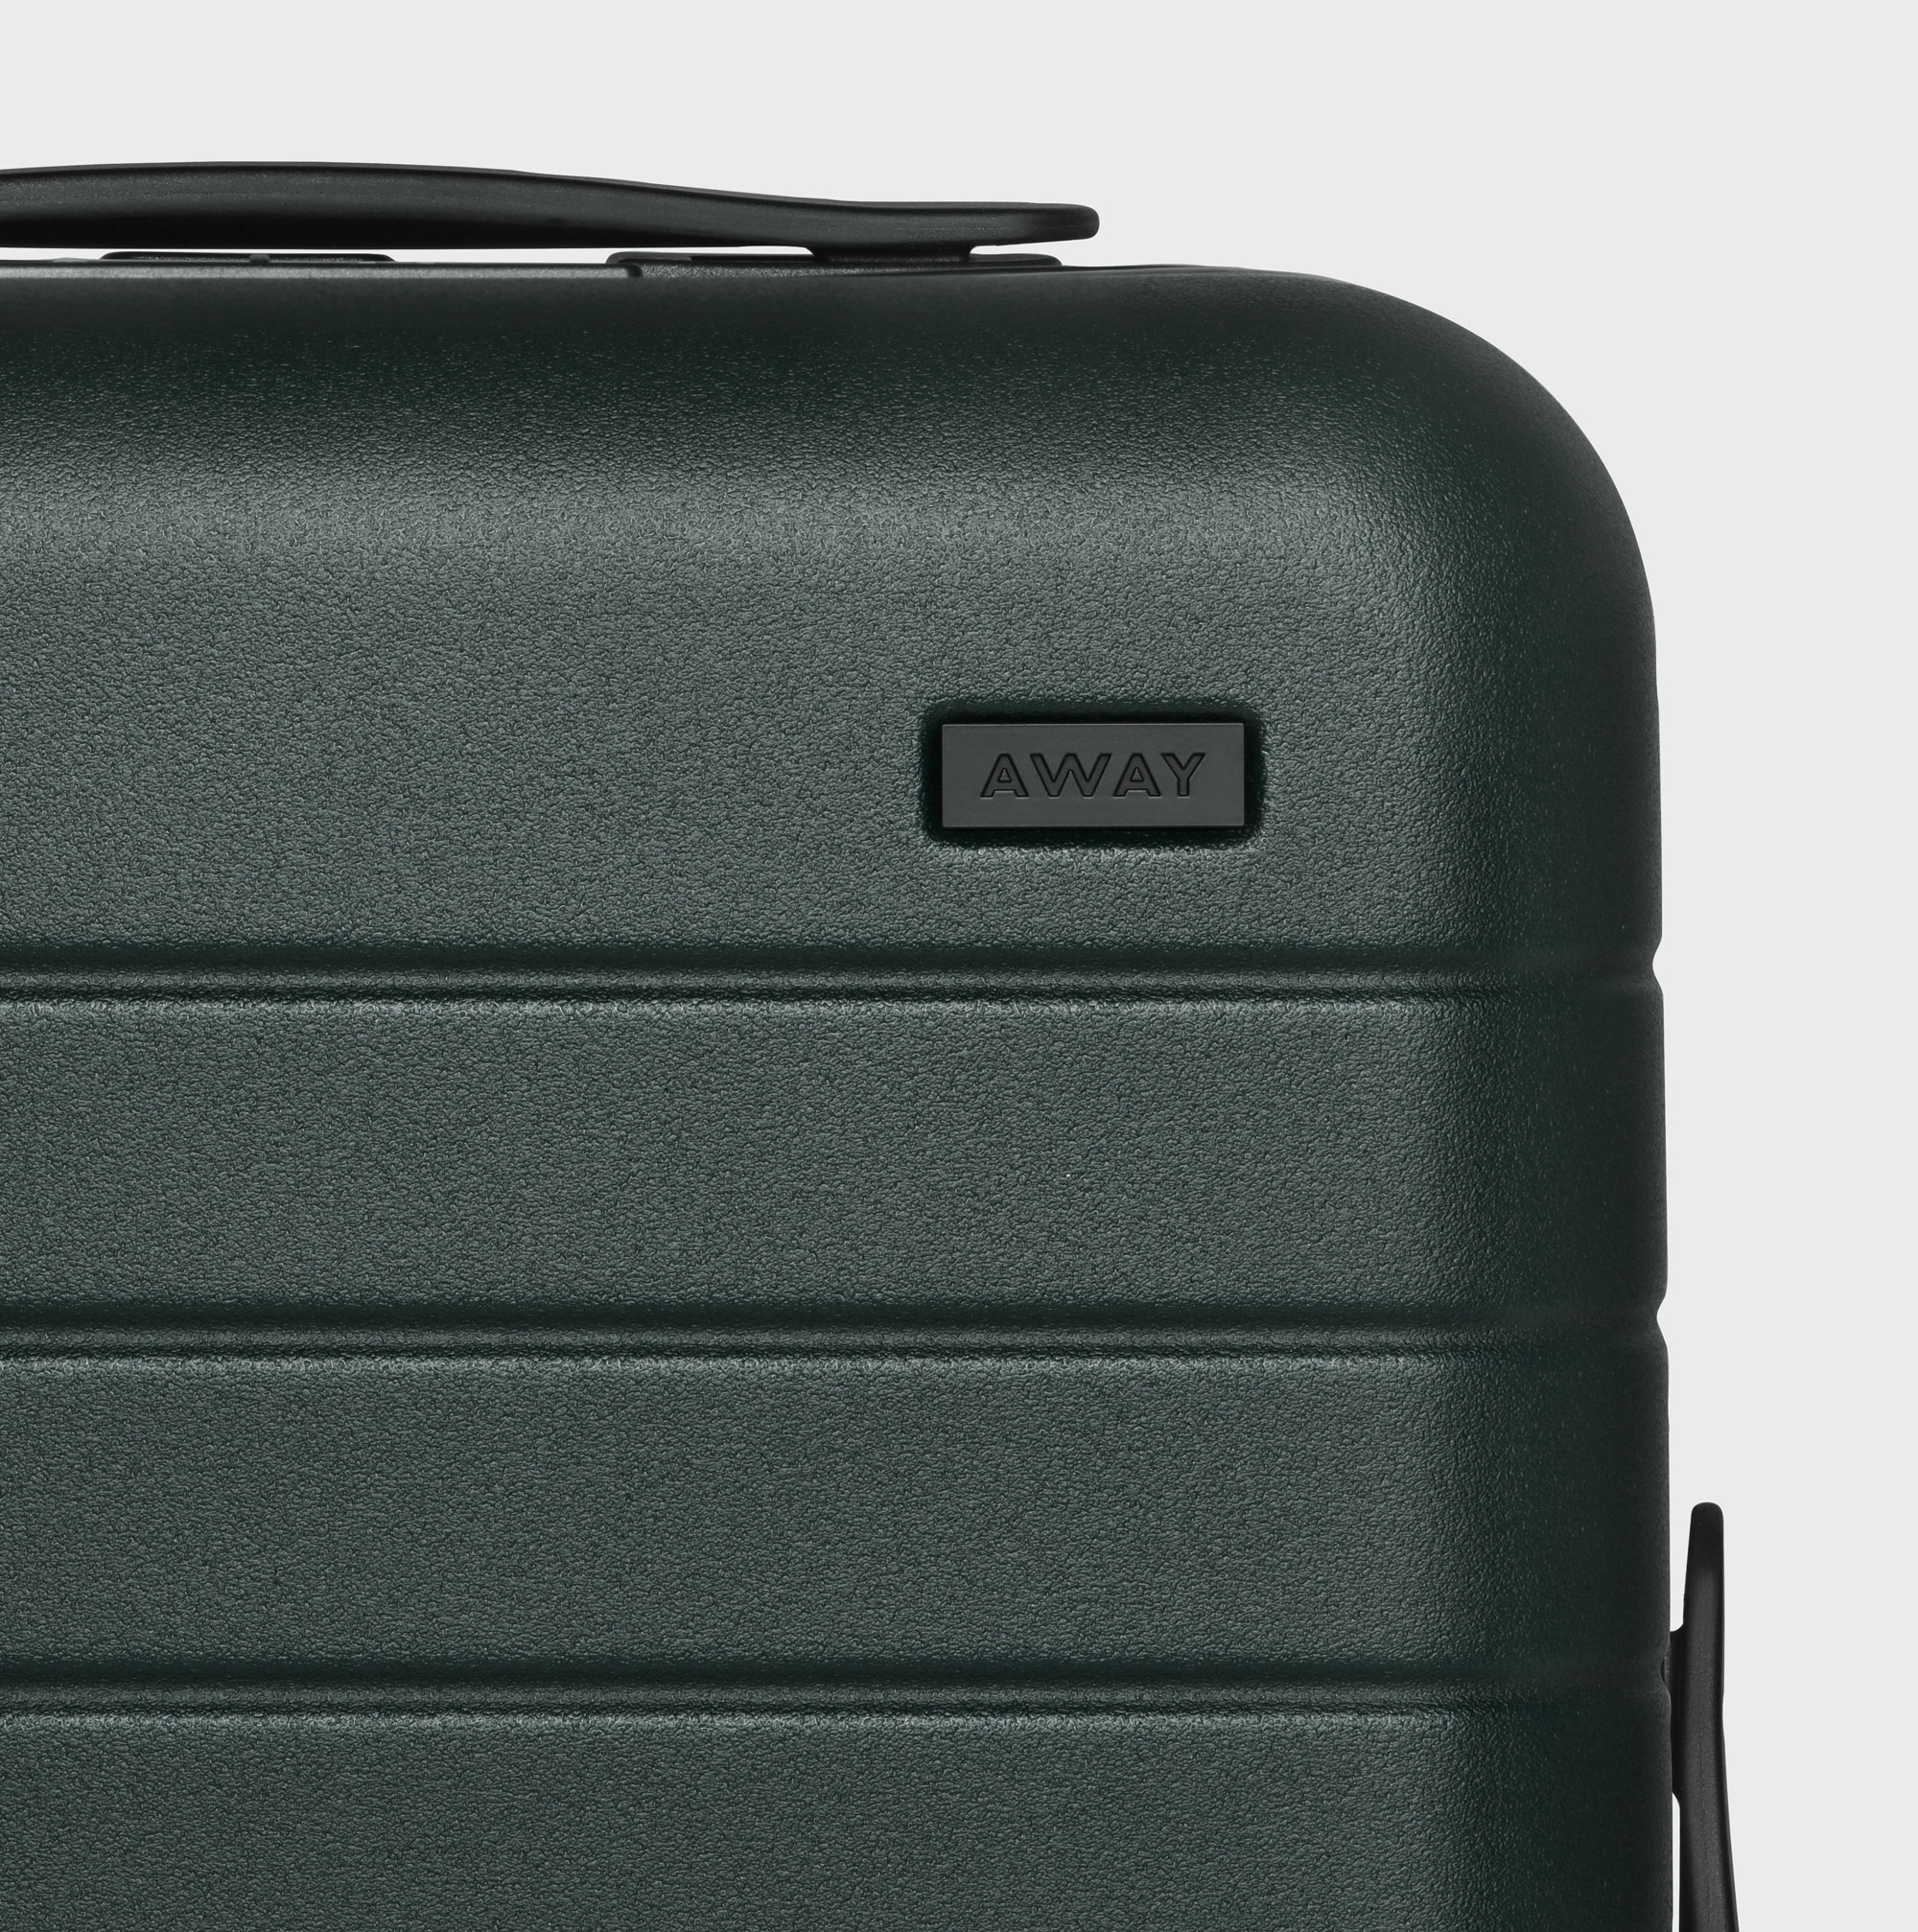 Away Luggage designed by Box Clever